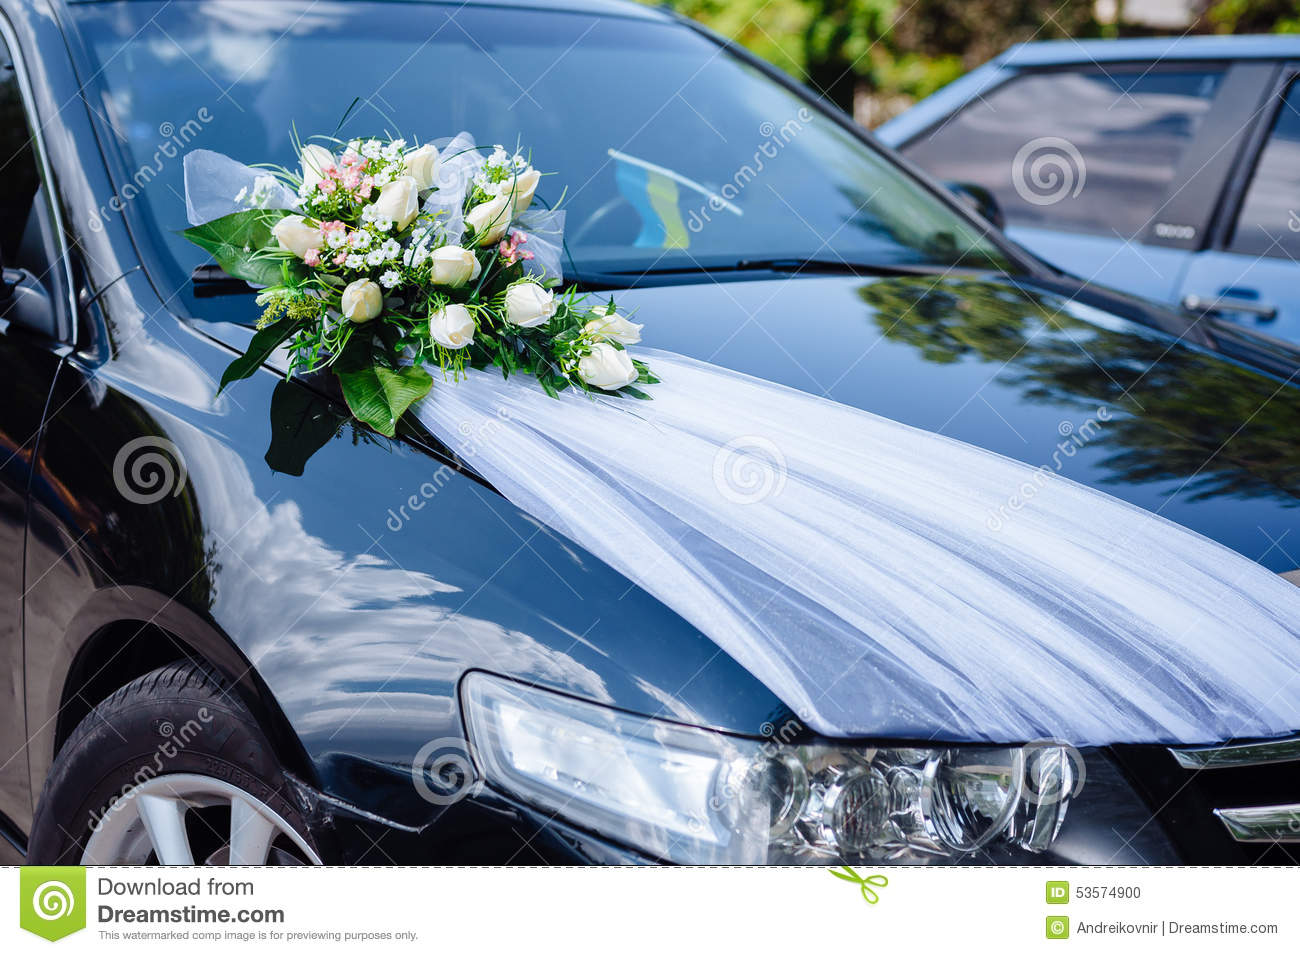 Wedding Car Decor Flowers Bouquet. Car Decoration Stock Photo ...